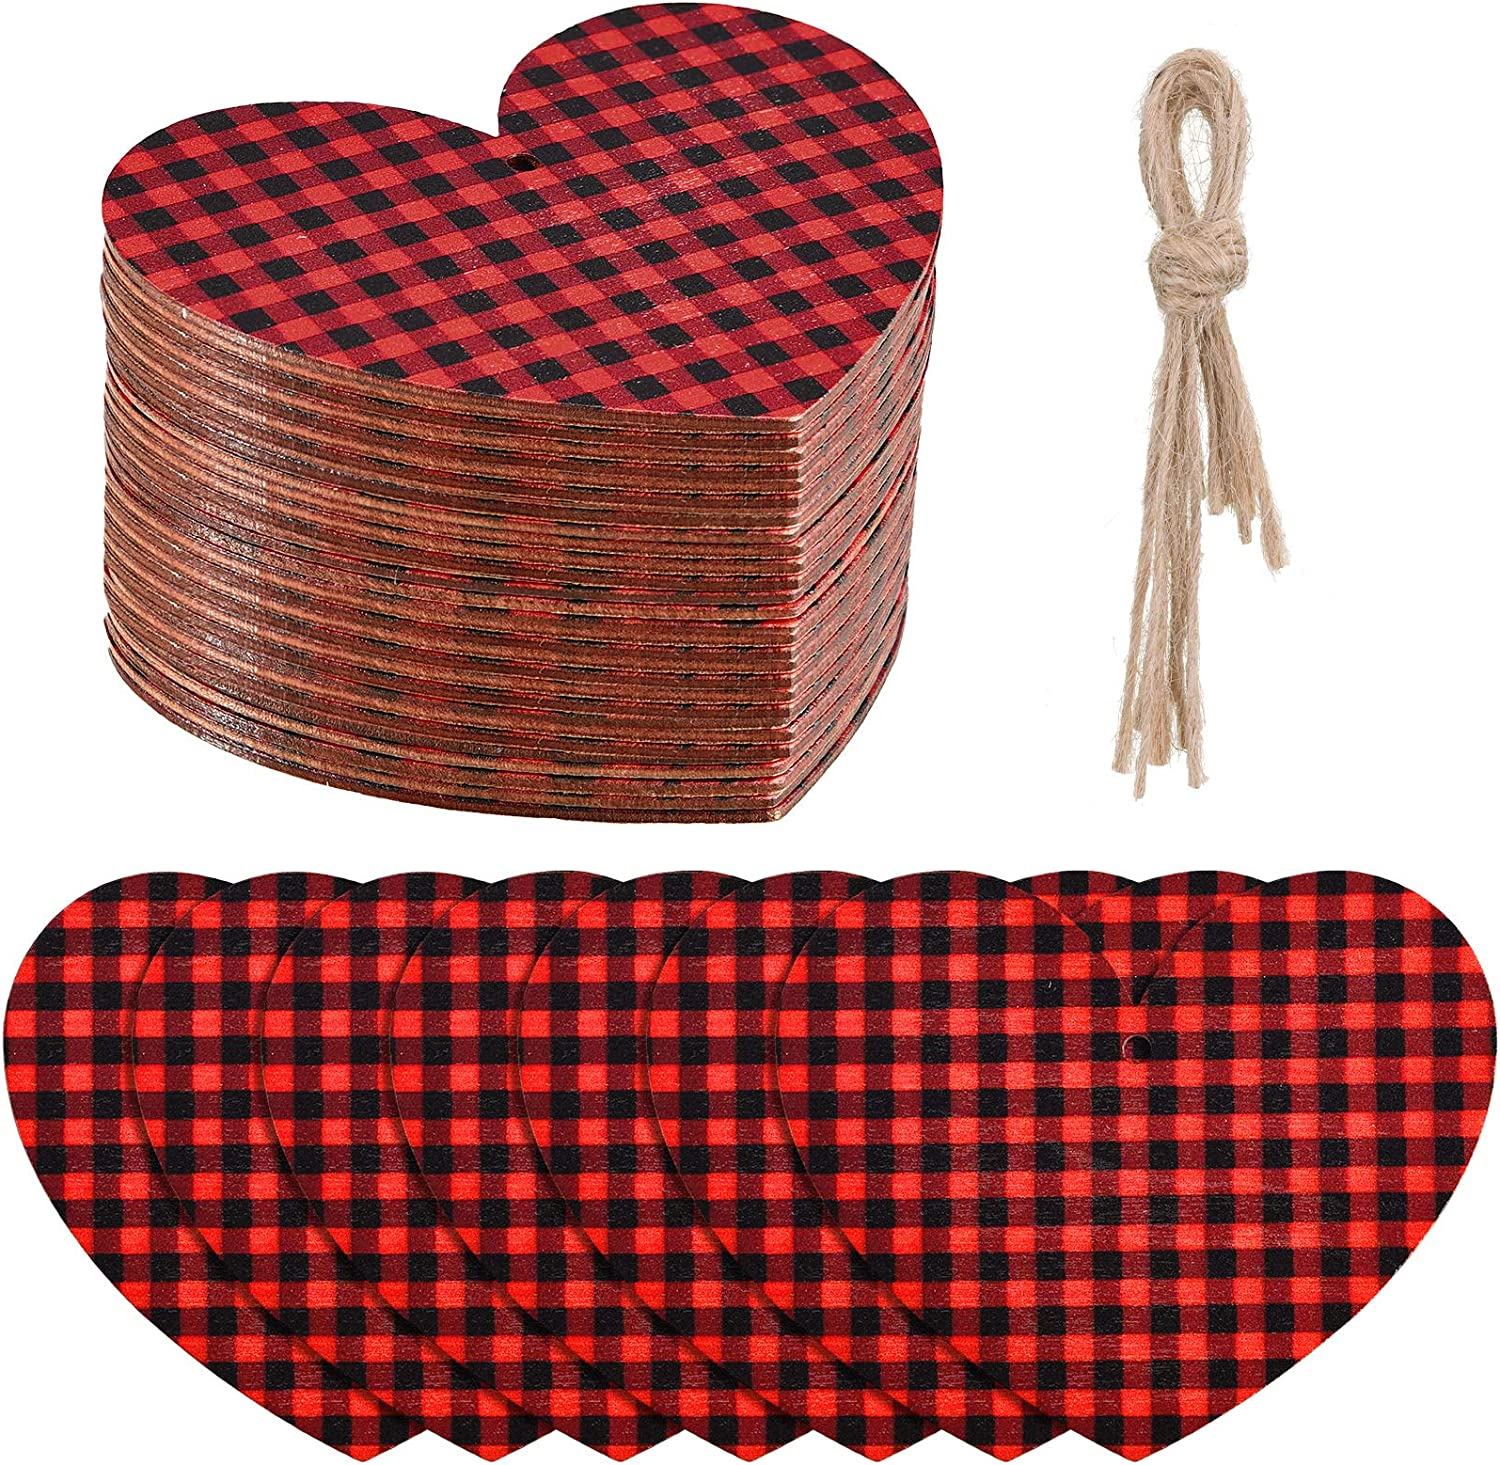 48 Pieces Buffalo Plaid Heart Miami Mall Wood Slice Ornament Wooden Sales of SALE items from new works L